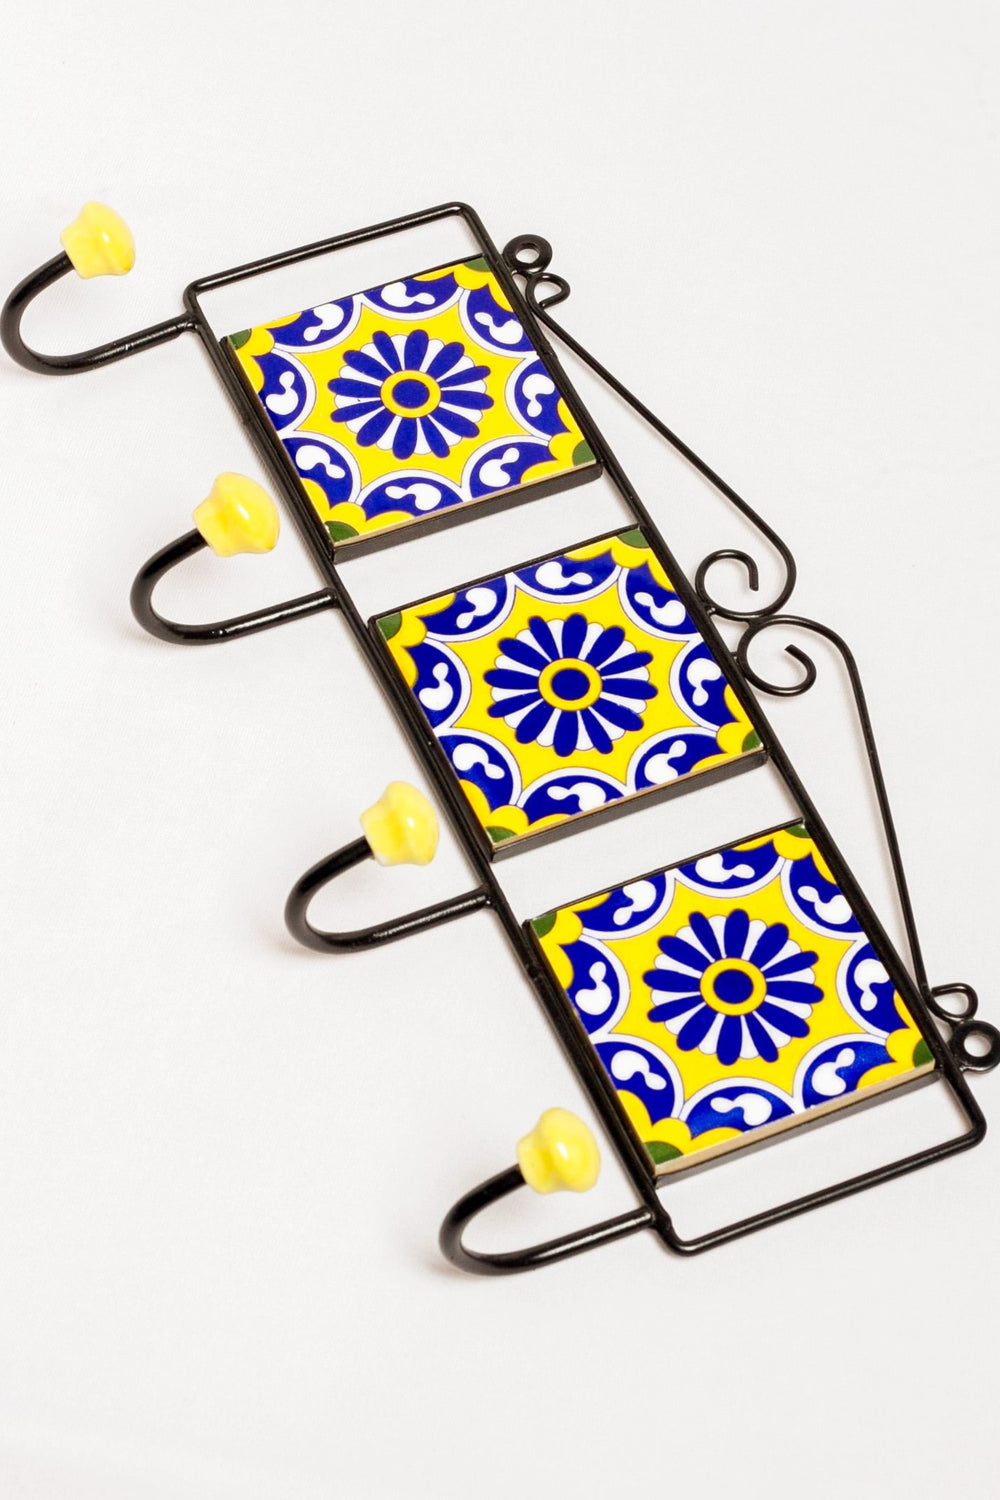 Metal and three ceramic tile with a 4 peg wall hook, yellow with blue and white floral motif